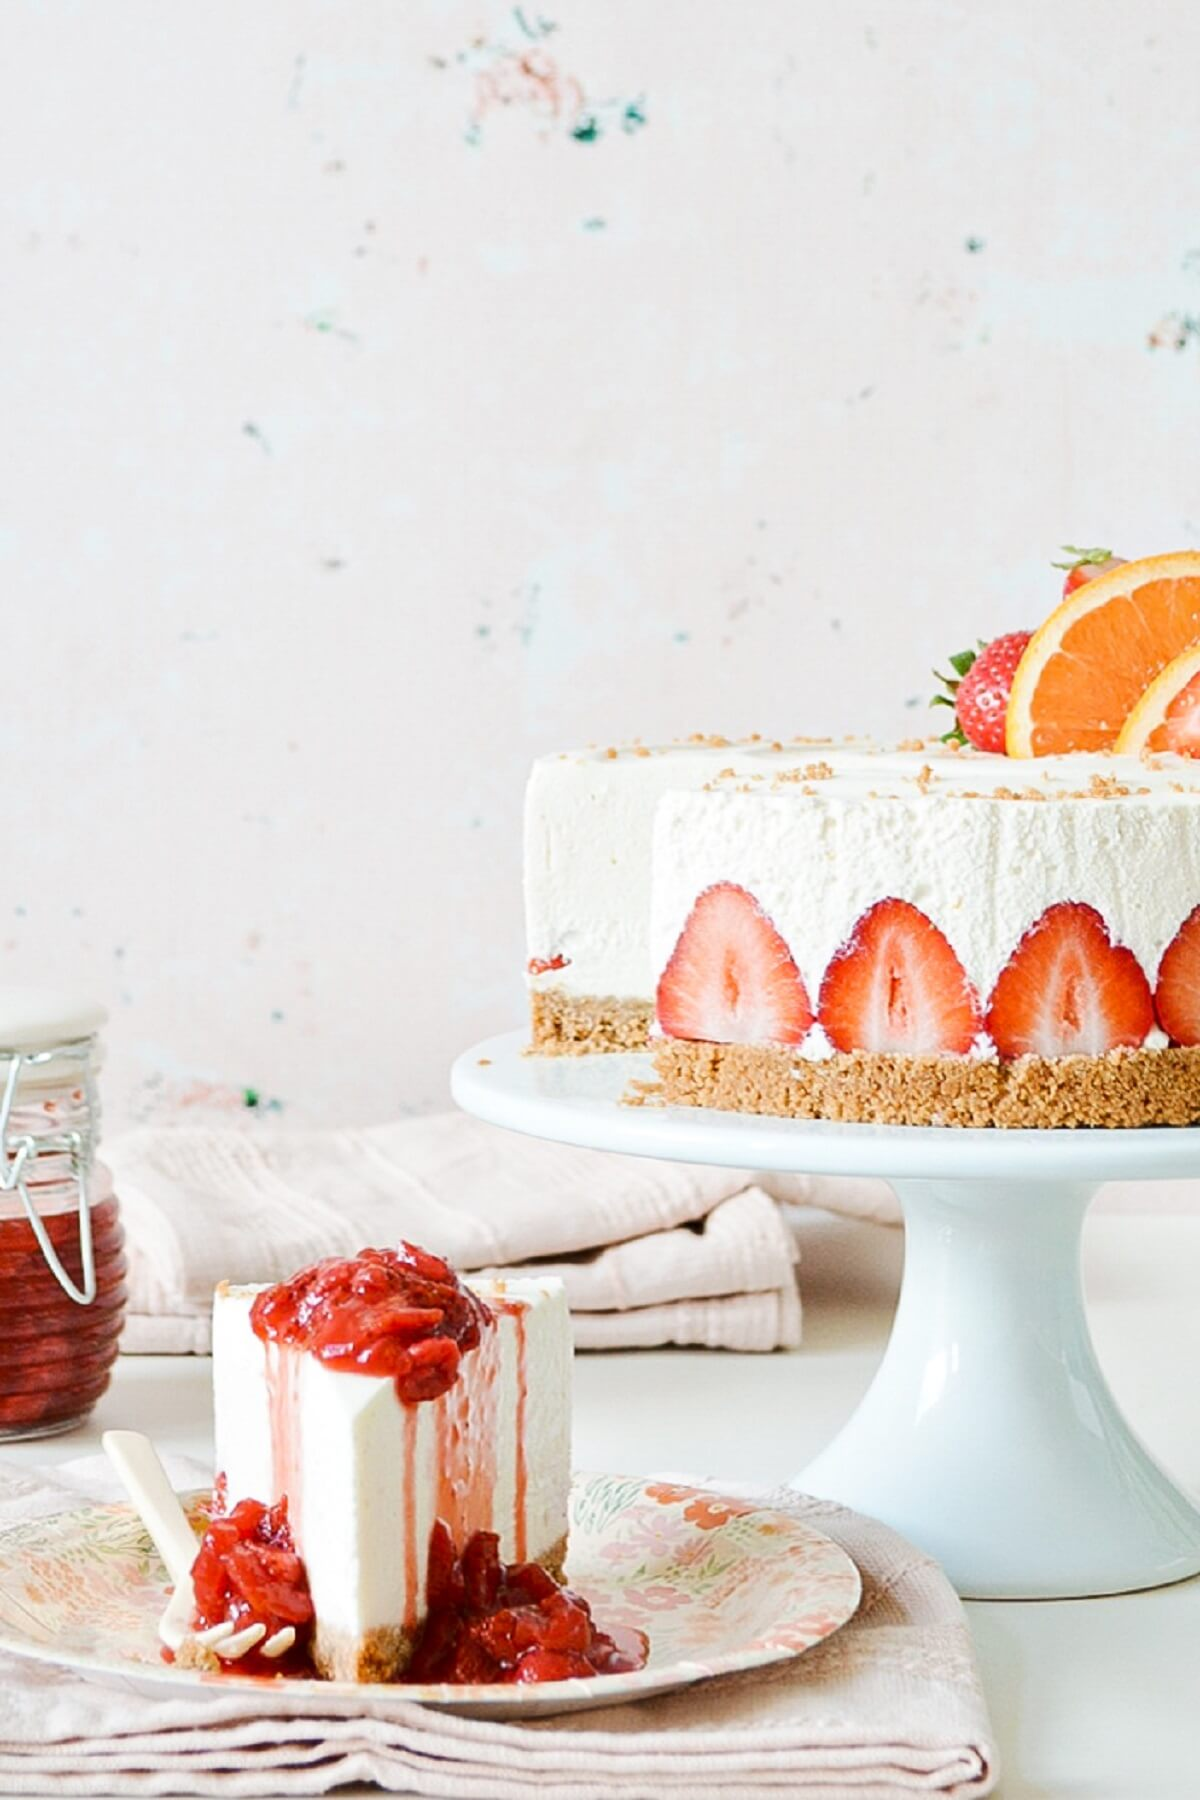 Strawberry orange cheesecake with a slice topped with strawberry sauce.